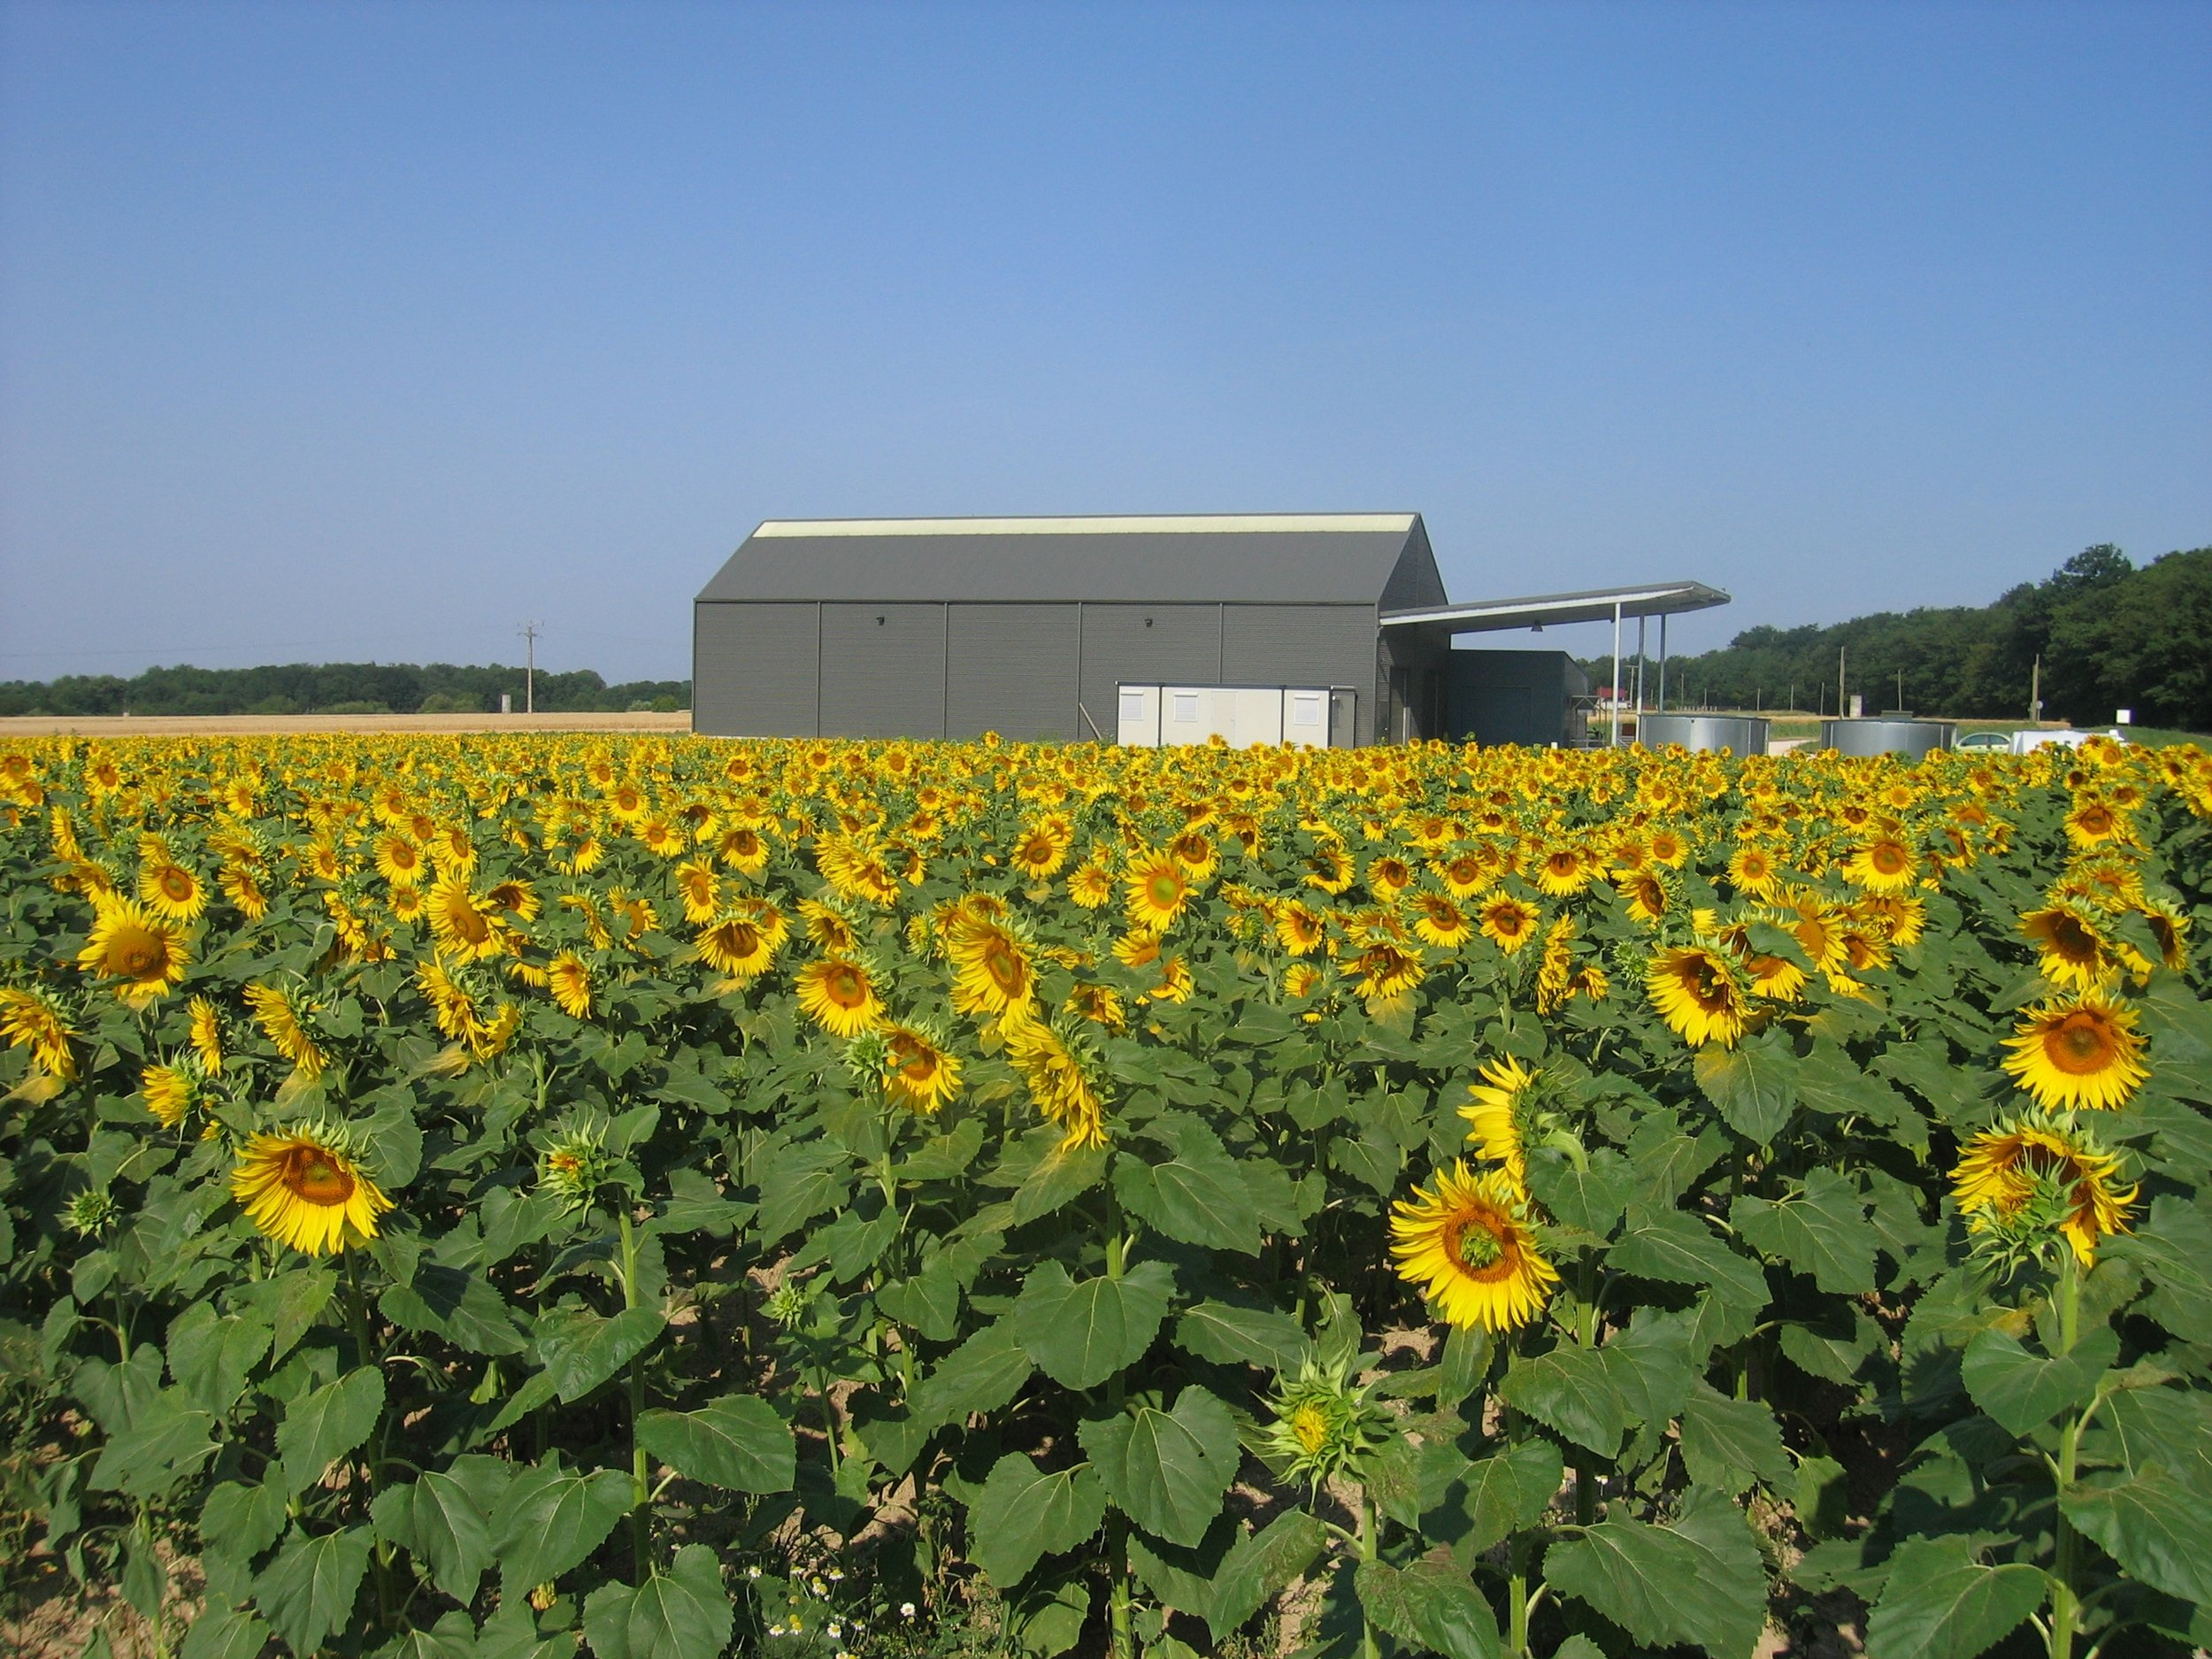 Winery with sunflowers.JPG